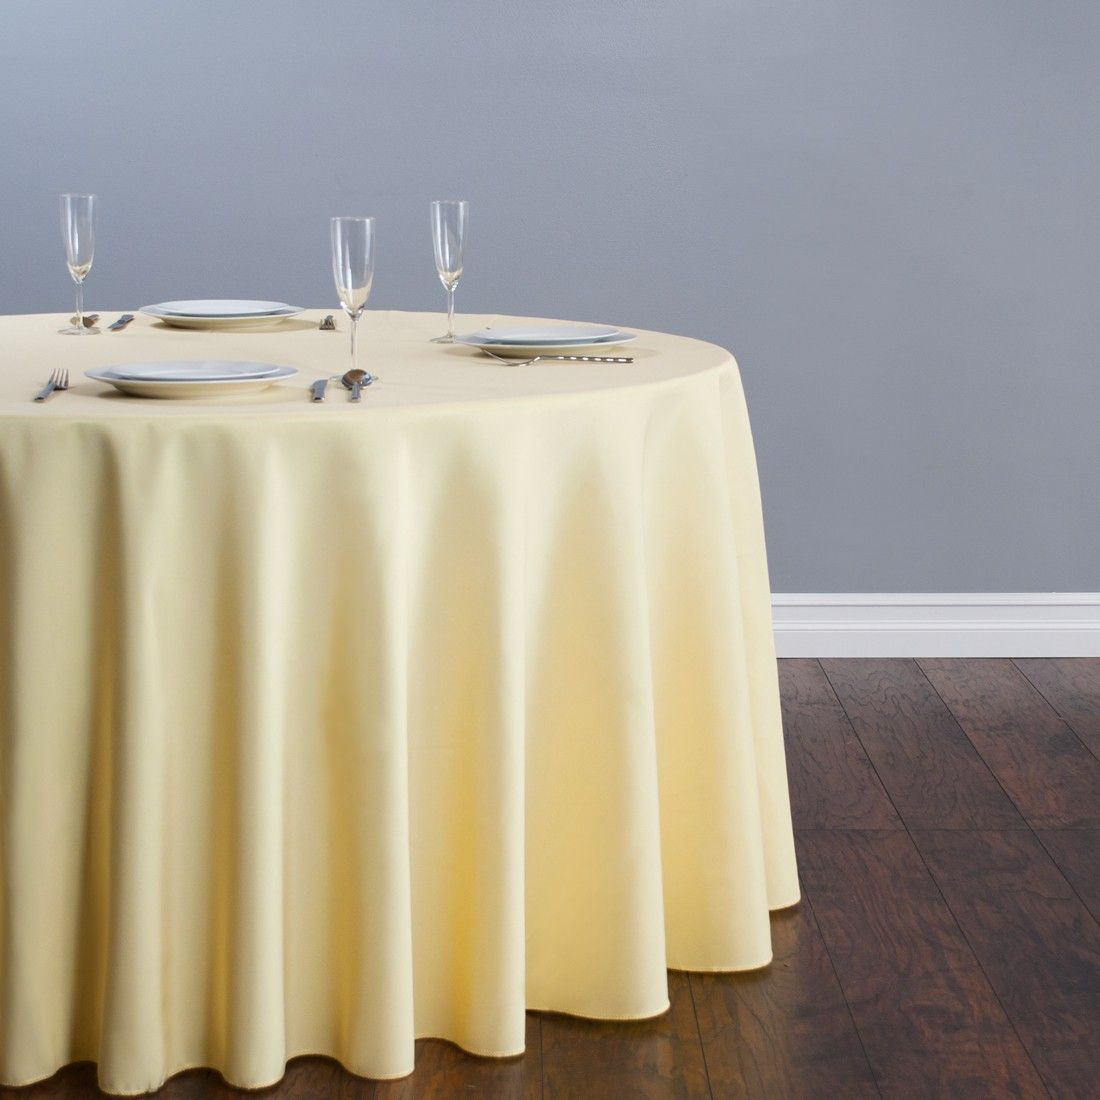 Buttercupcatering Buttercupcateringyum Pinterest Facebook Google Buttercup Catering Claremont Ca Lo Table Cloth Yellow Tablecloth Round Tablecloth